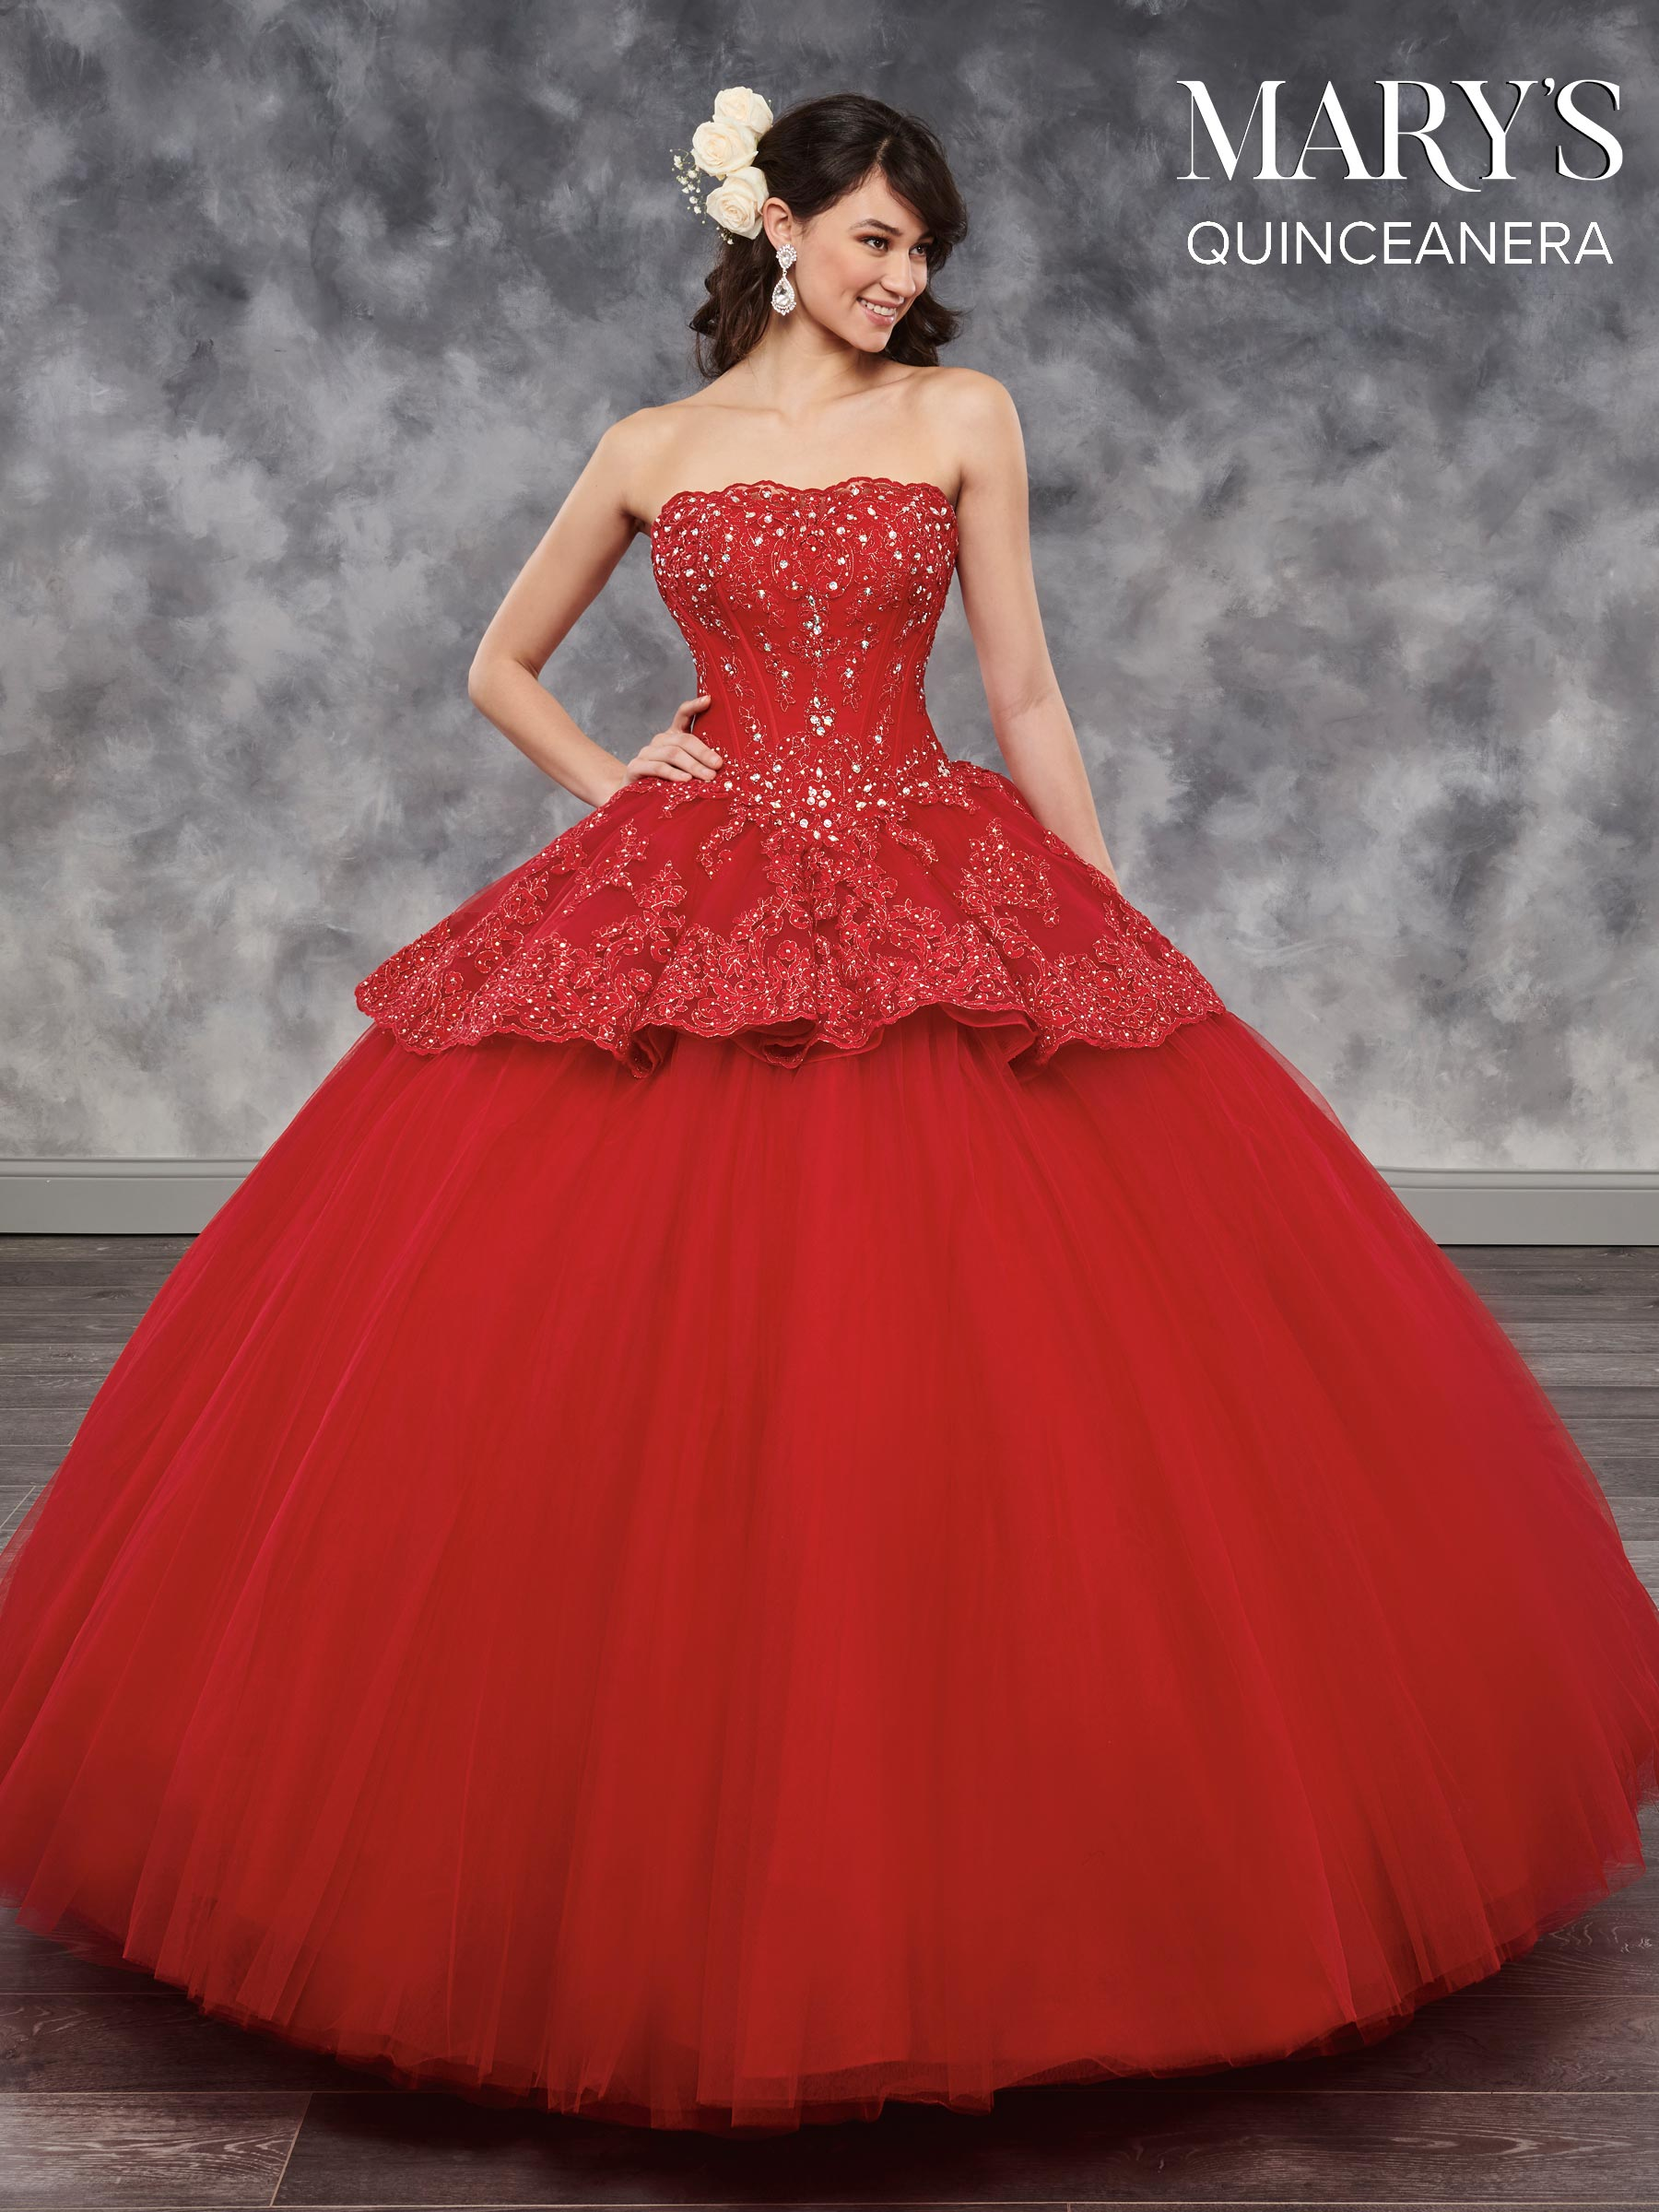 Marys Quinceanera Dresses | Mary's Quinceanera | Style - MQ1021